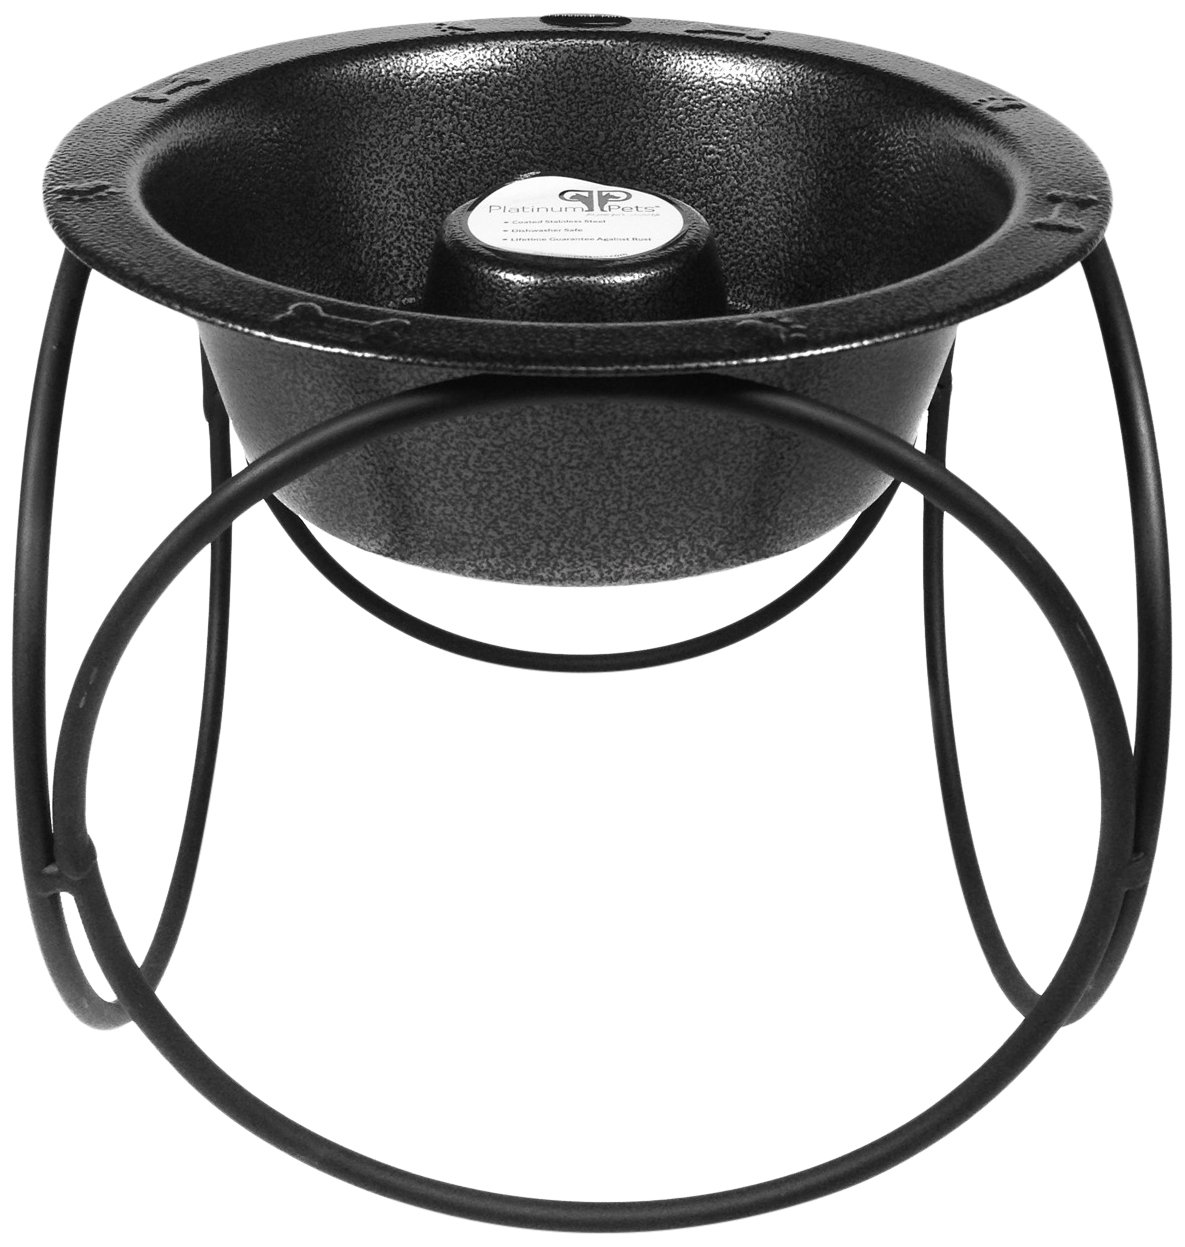 Platinum Pets Slow Eating Single Olympic Diner Feeder with Stainless Steel Dog Bowl, Silver Vein by Platinum Pets